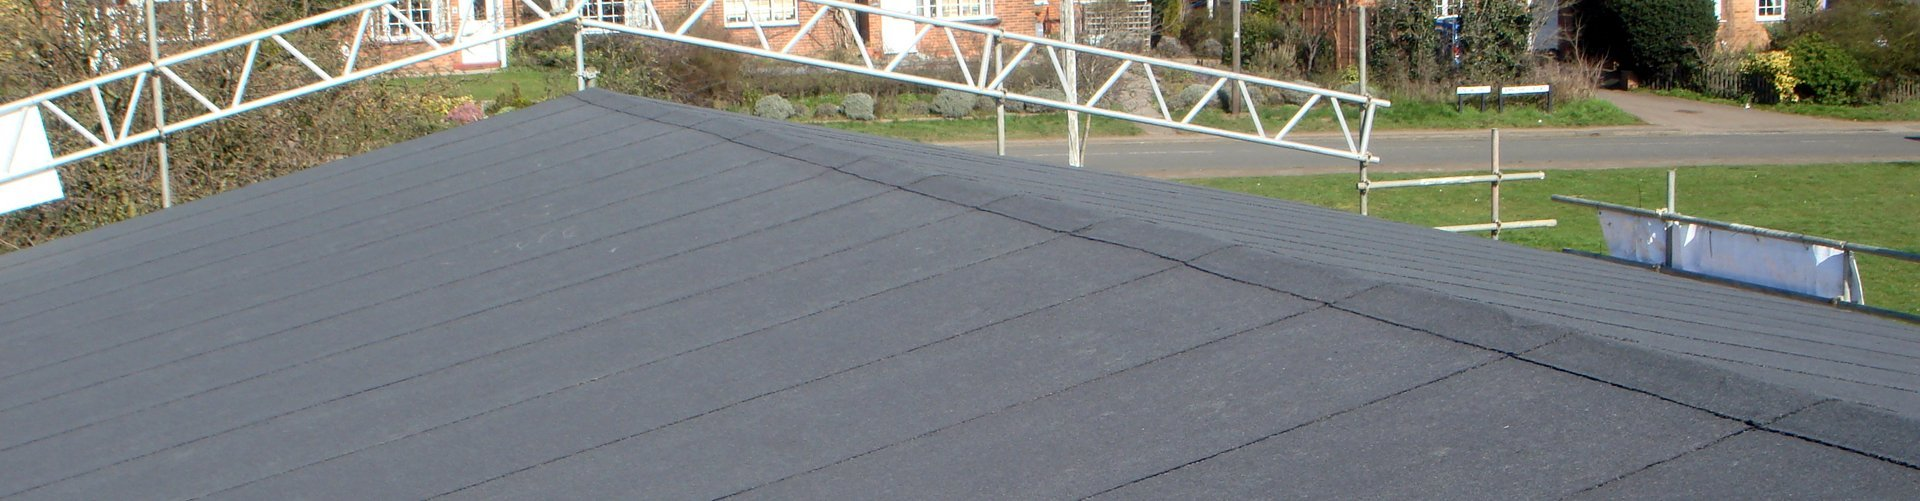 A newly laid flat roof by Accurate Flat Roofing